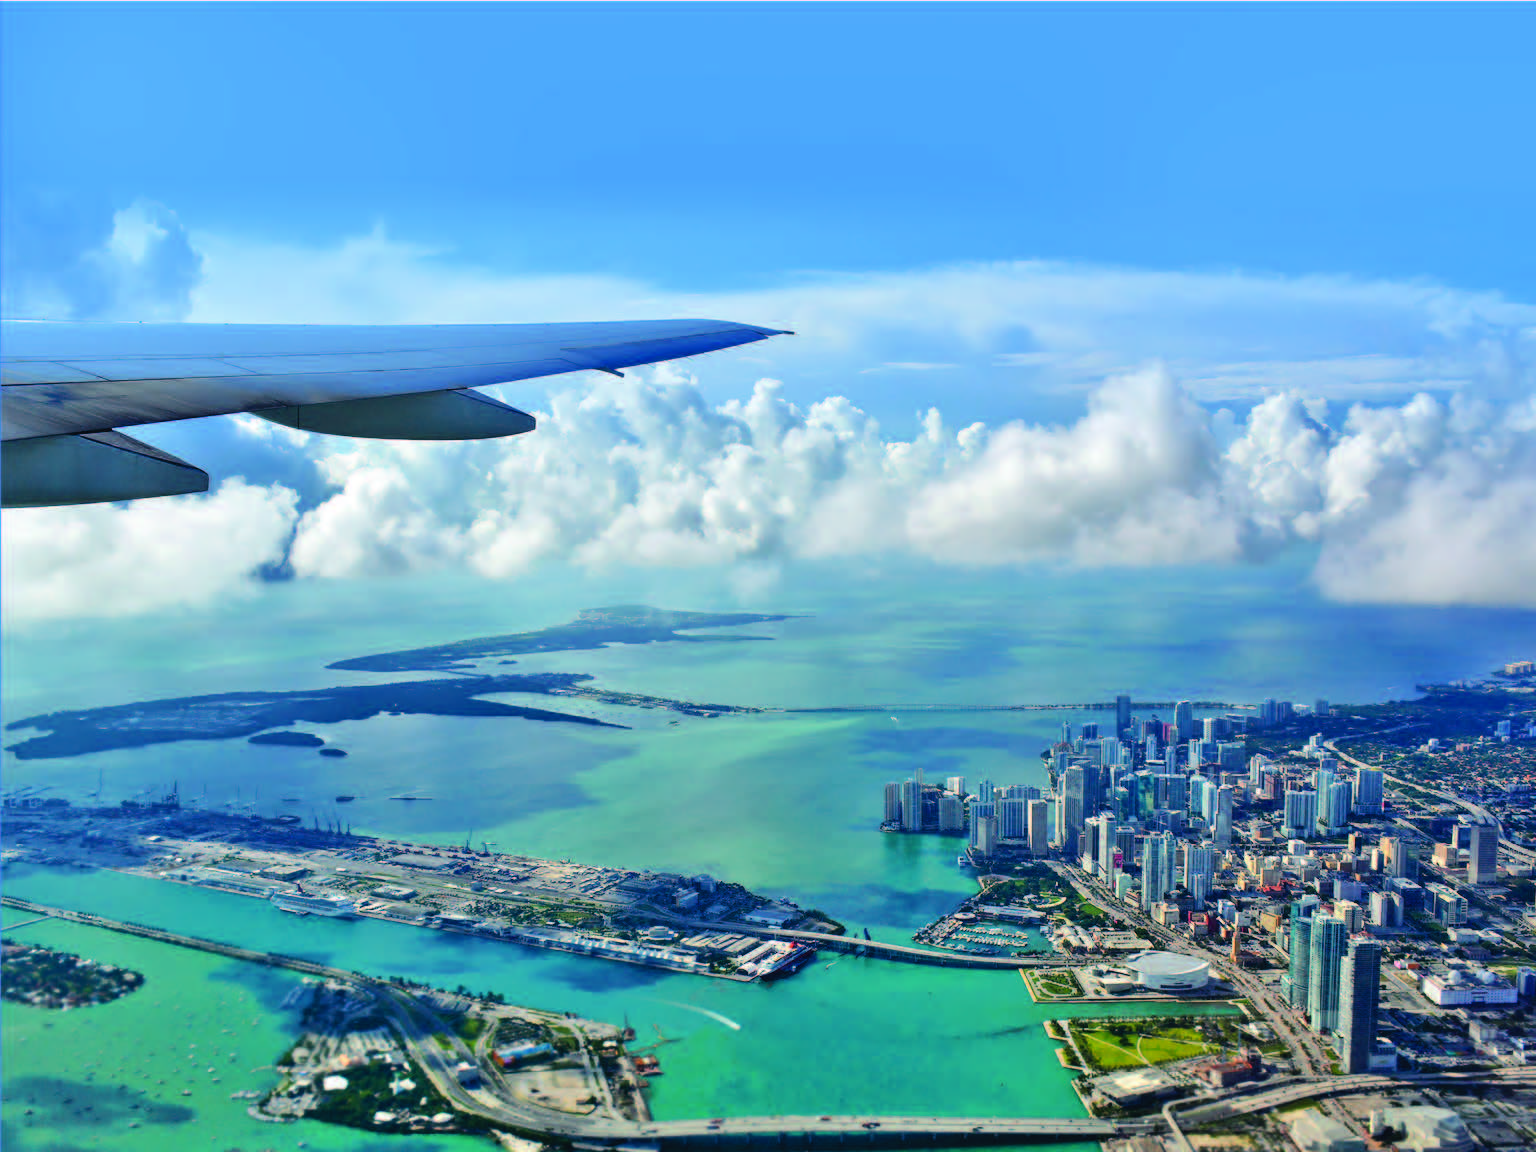 Landing at Miami airport